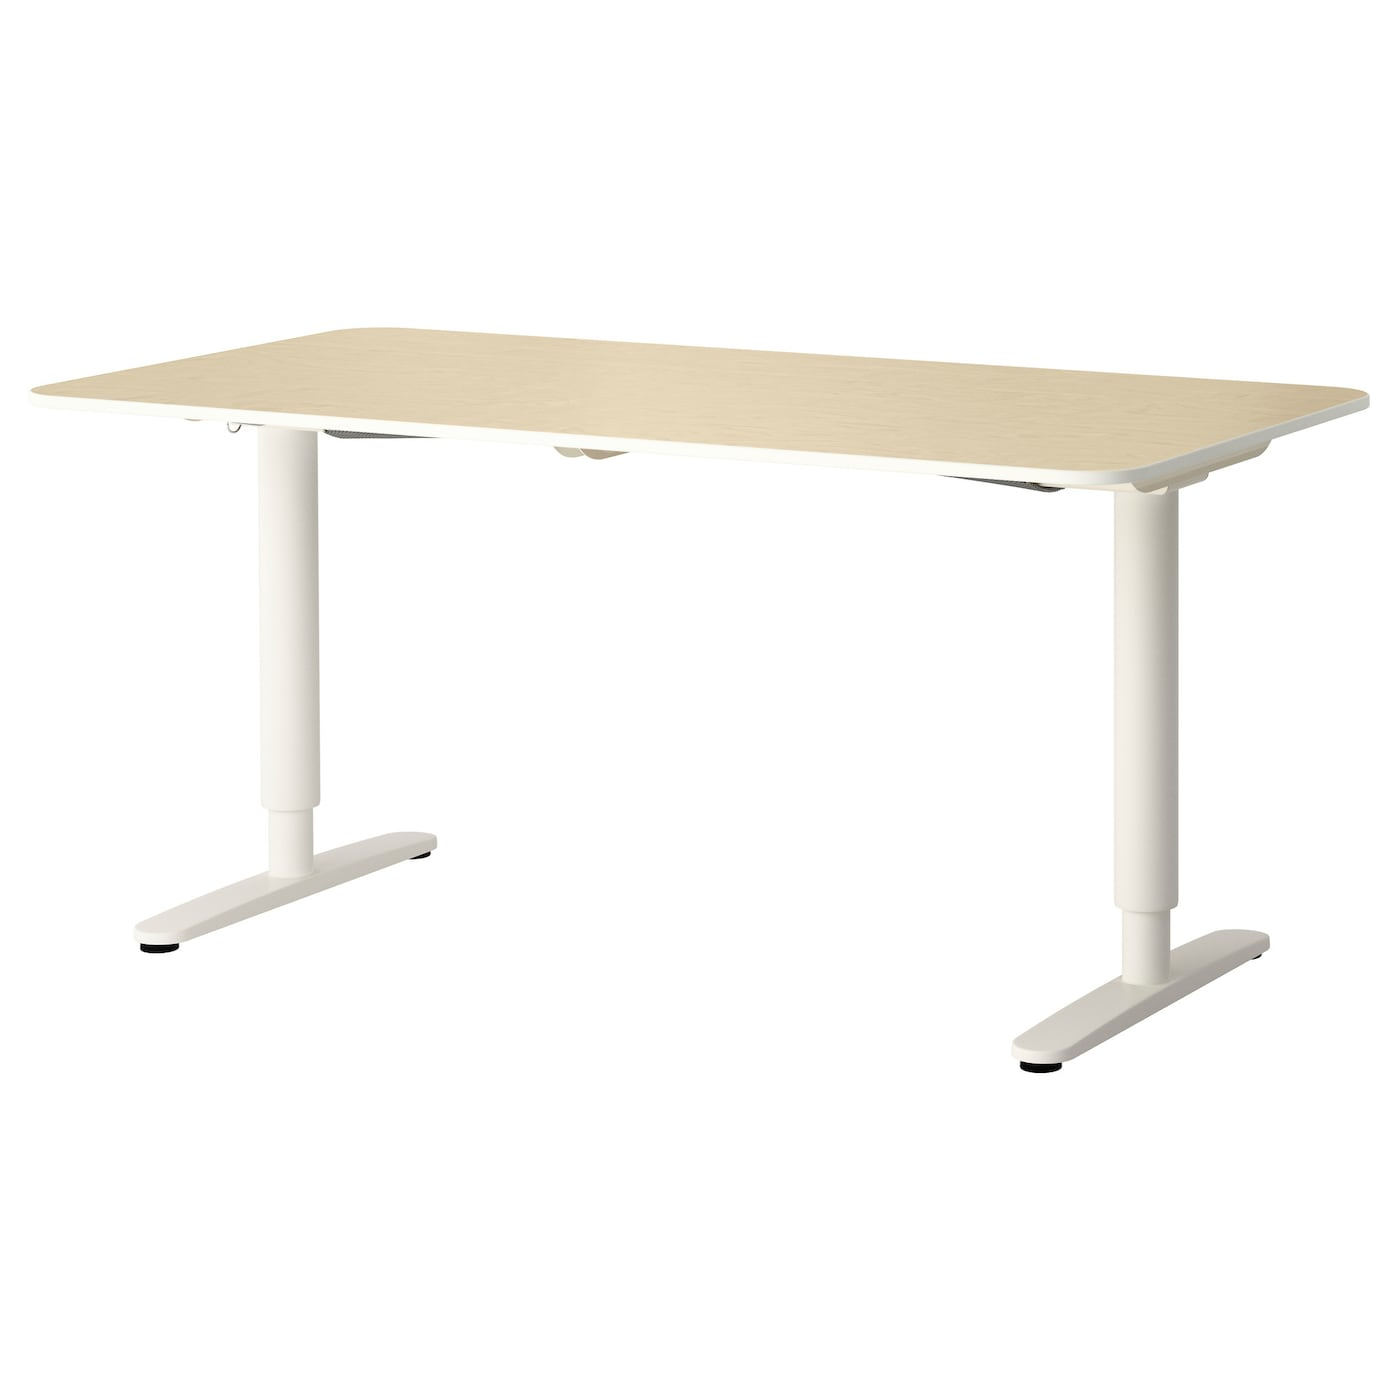 year veneer stand products white ie terms spr sit desks birch guarantee about office the cm in desk bekant read ikea en